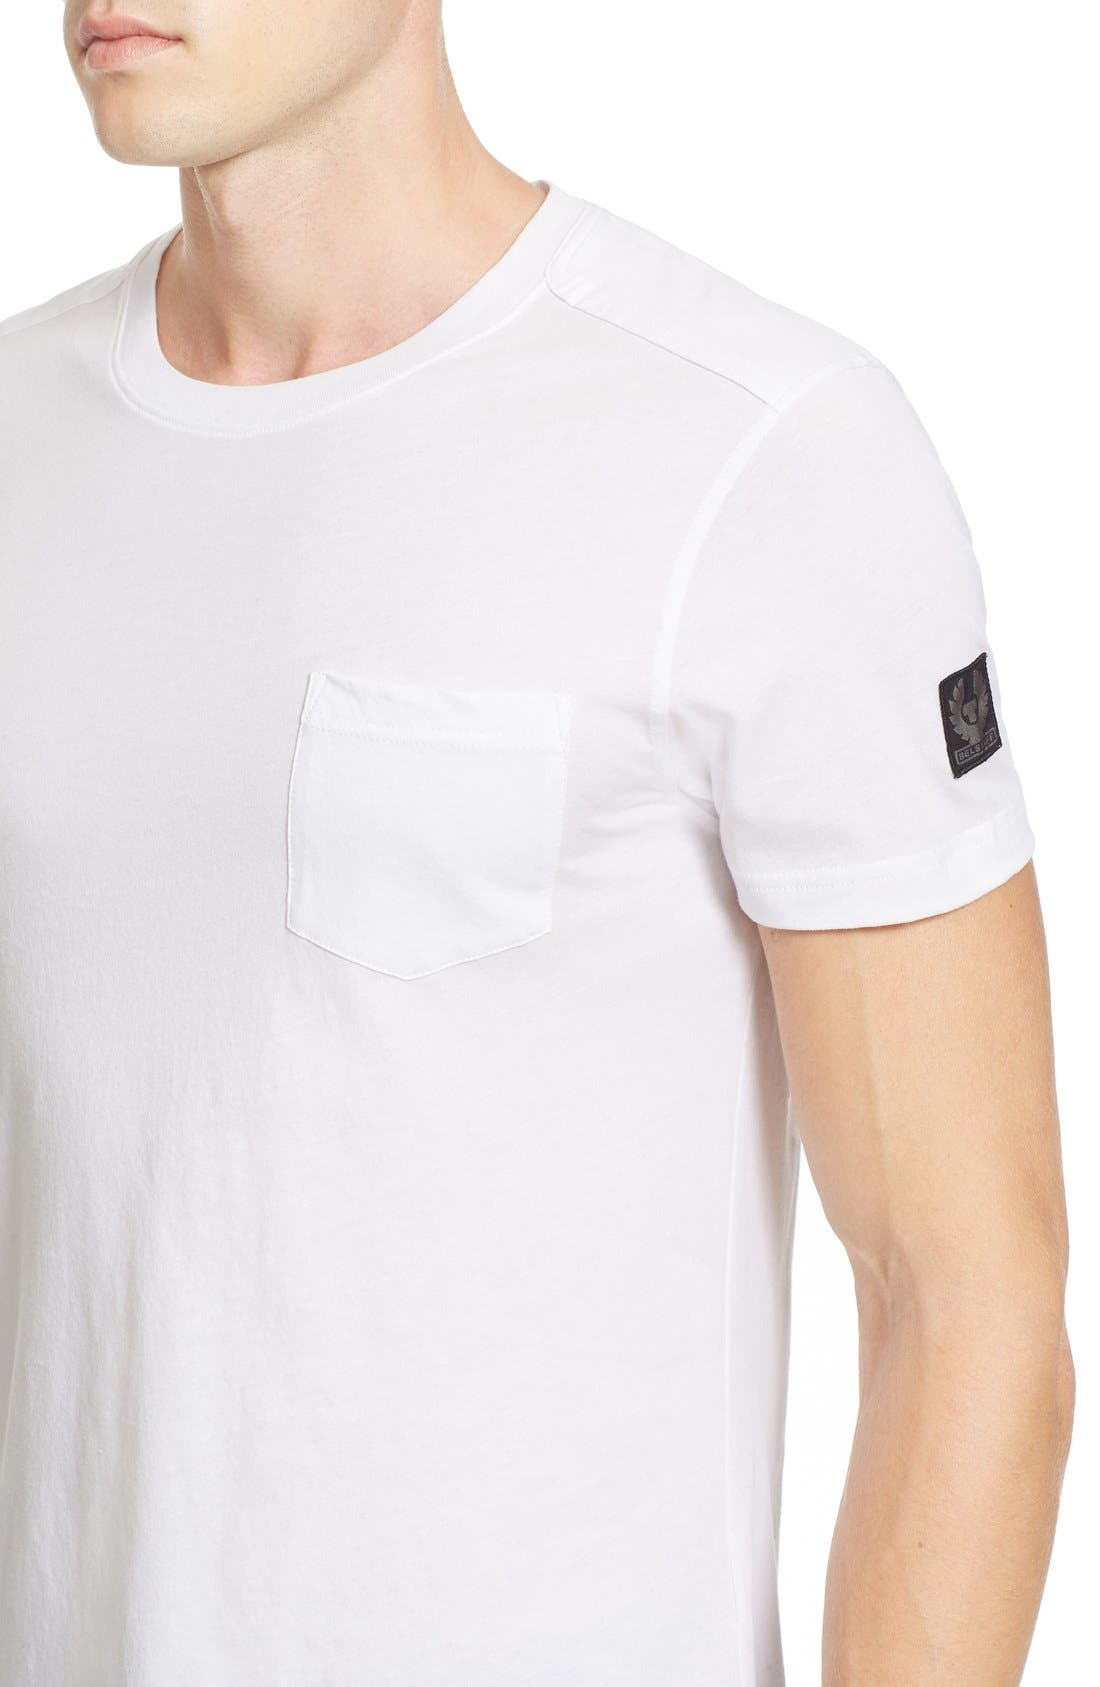 New Thom Heritage Jersey T-Shirt,                             Alternate thumbnail 4, color,                             White